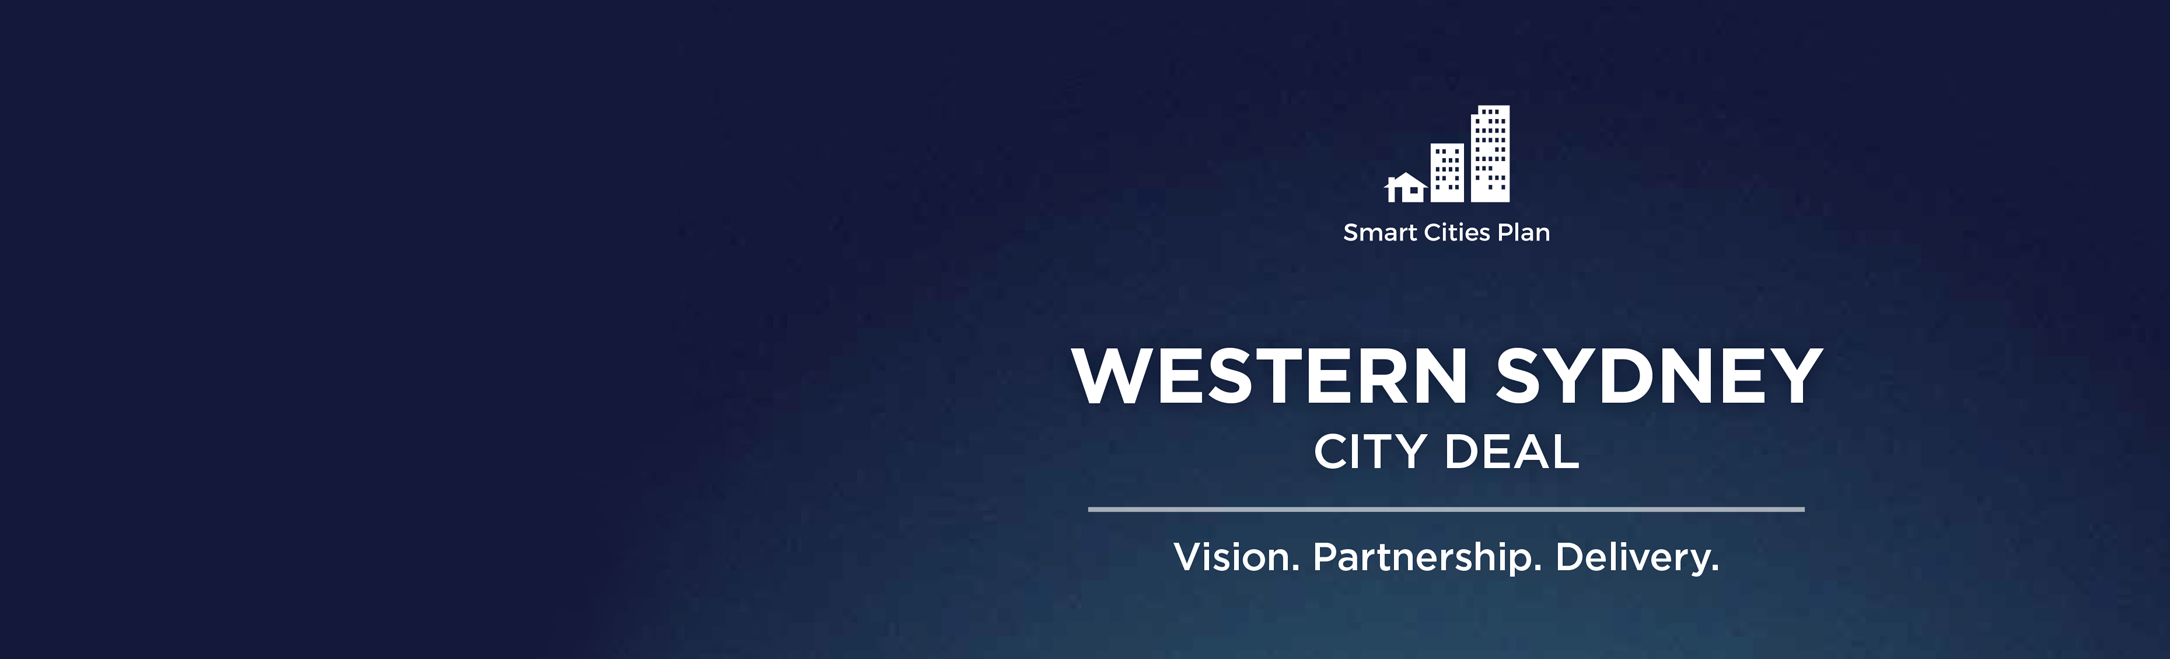 The Western Sydney City Deal logo and slogan Vision. Partnership. Delivery.